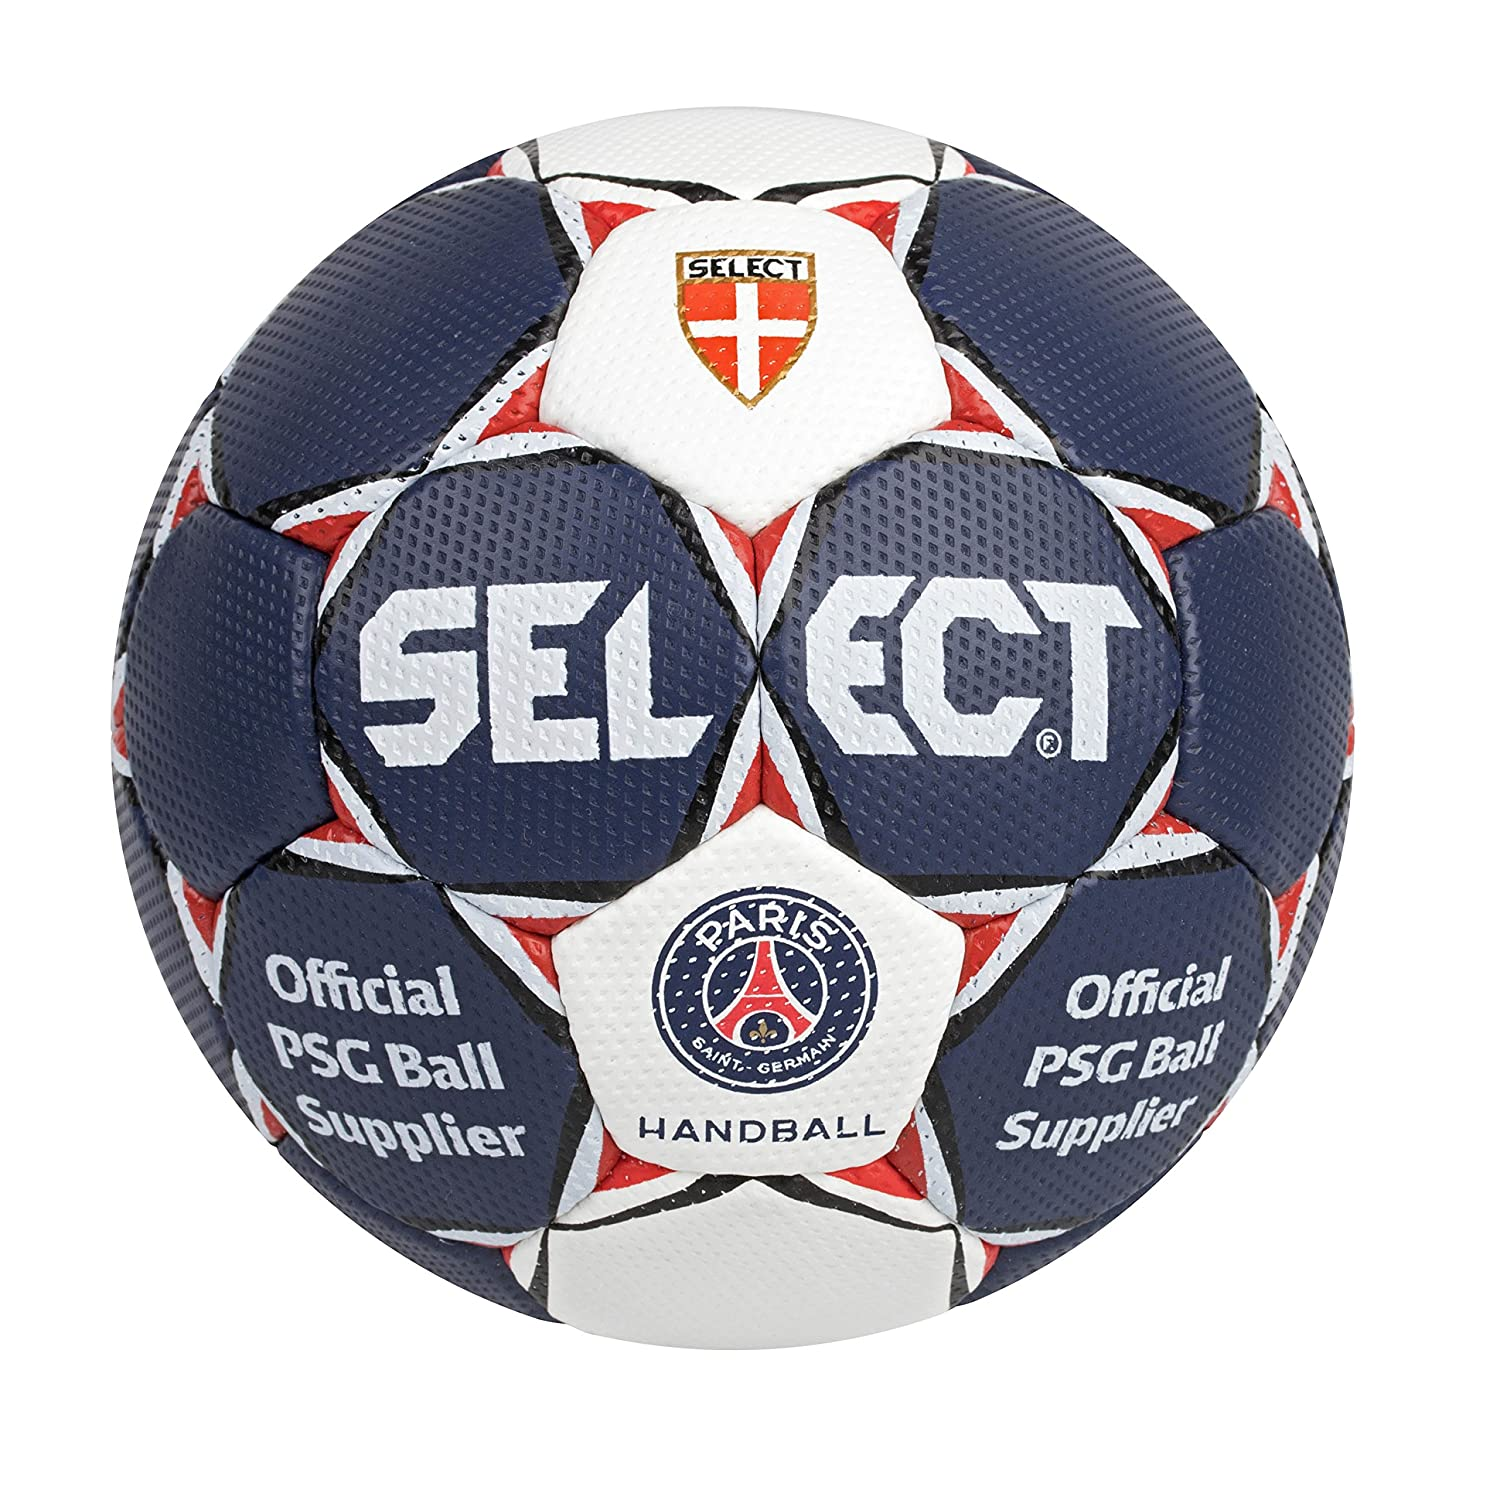 TALLA senior(3). Select Ballon Solera Replica PSG Handball